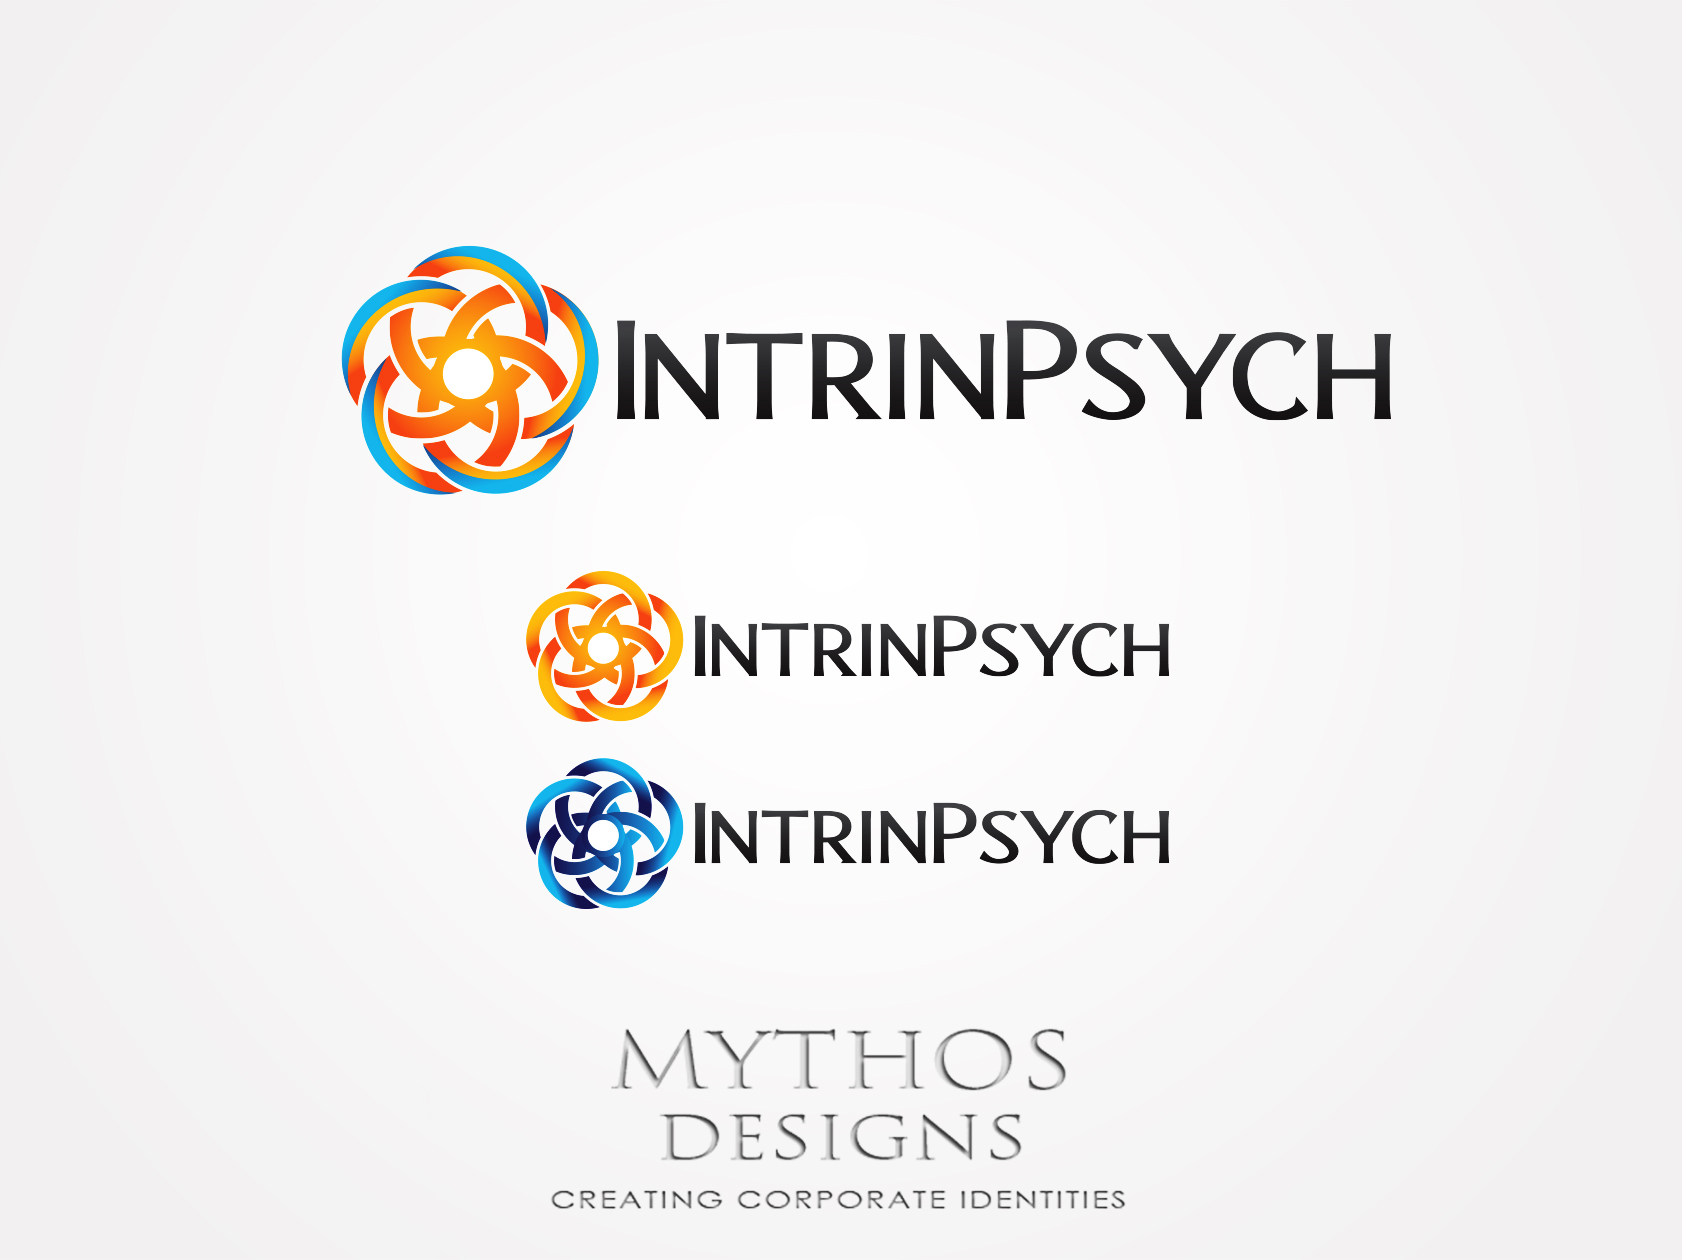 Logo Design by Mythos Designs - Entry No. 143 in the Logo Design Contest New Logo Design for IntrinPsych.